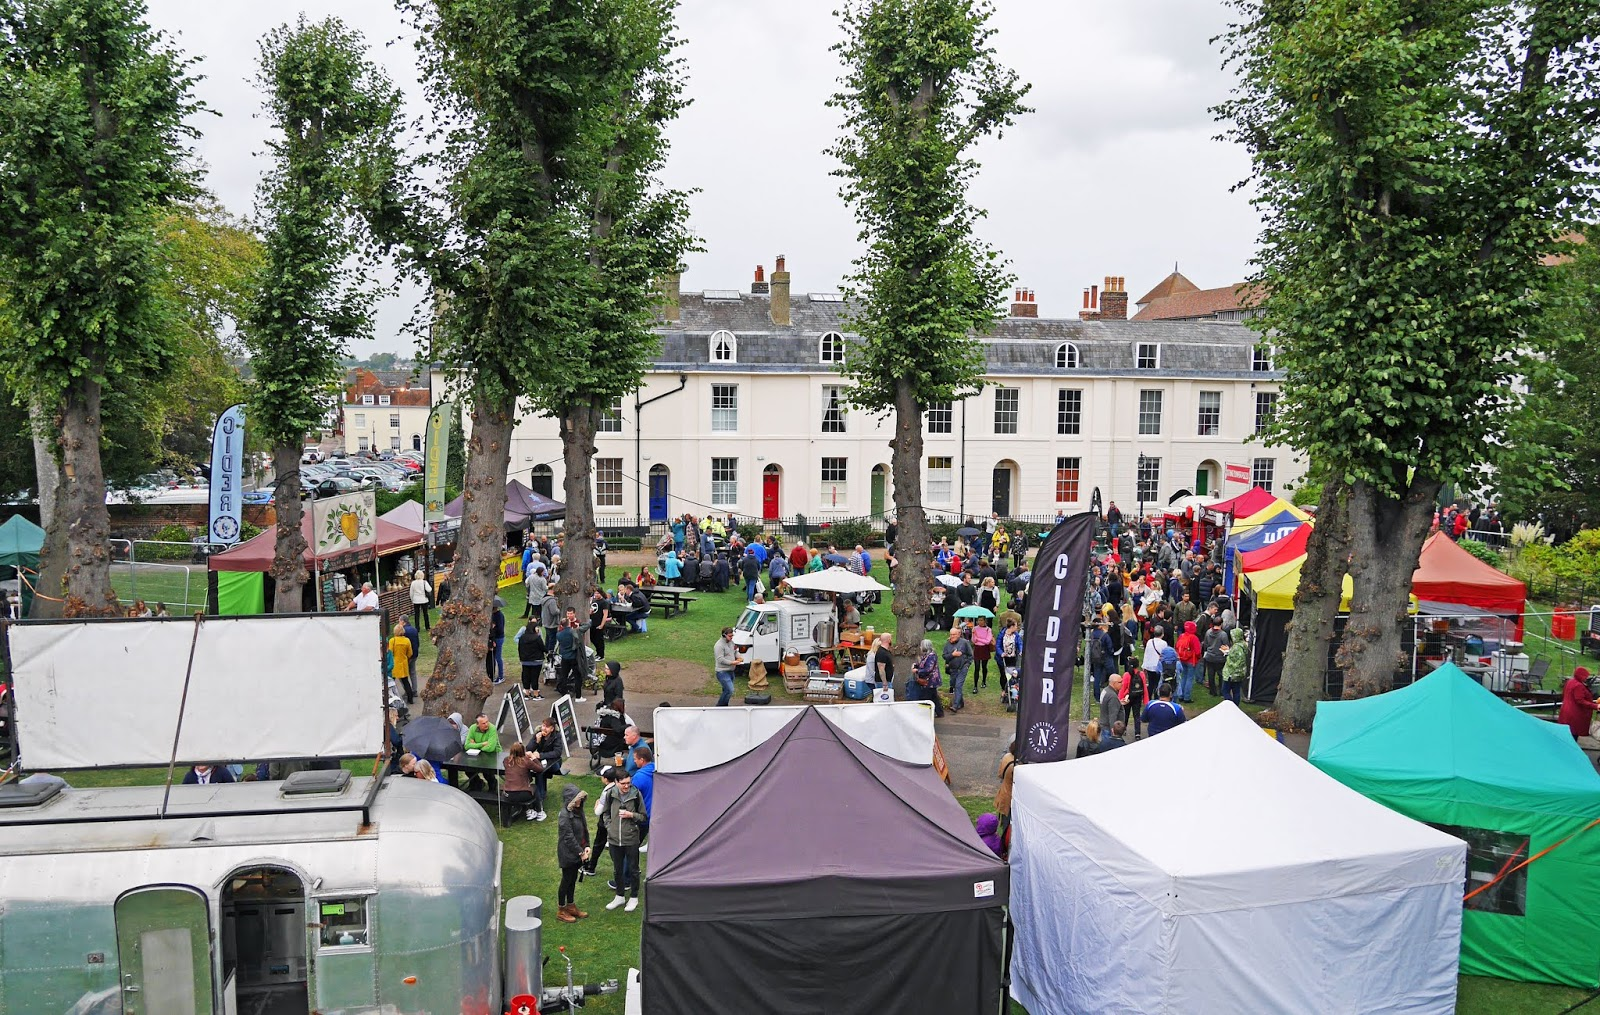 The entrance to the Canterbury Food Festival from above